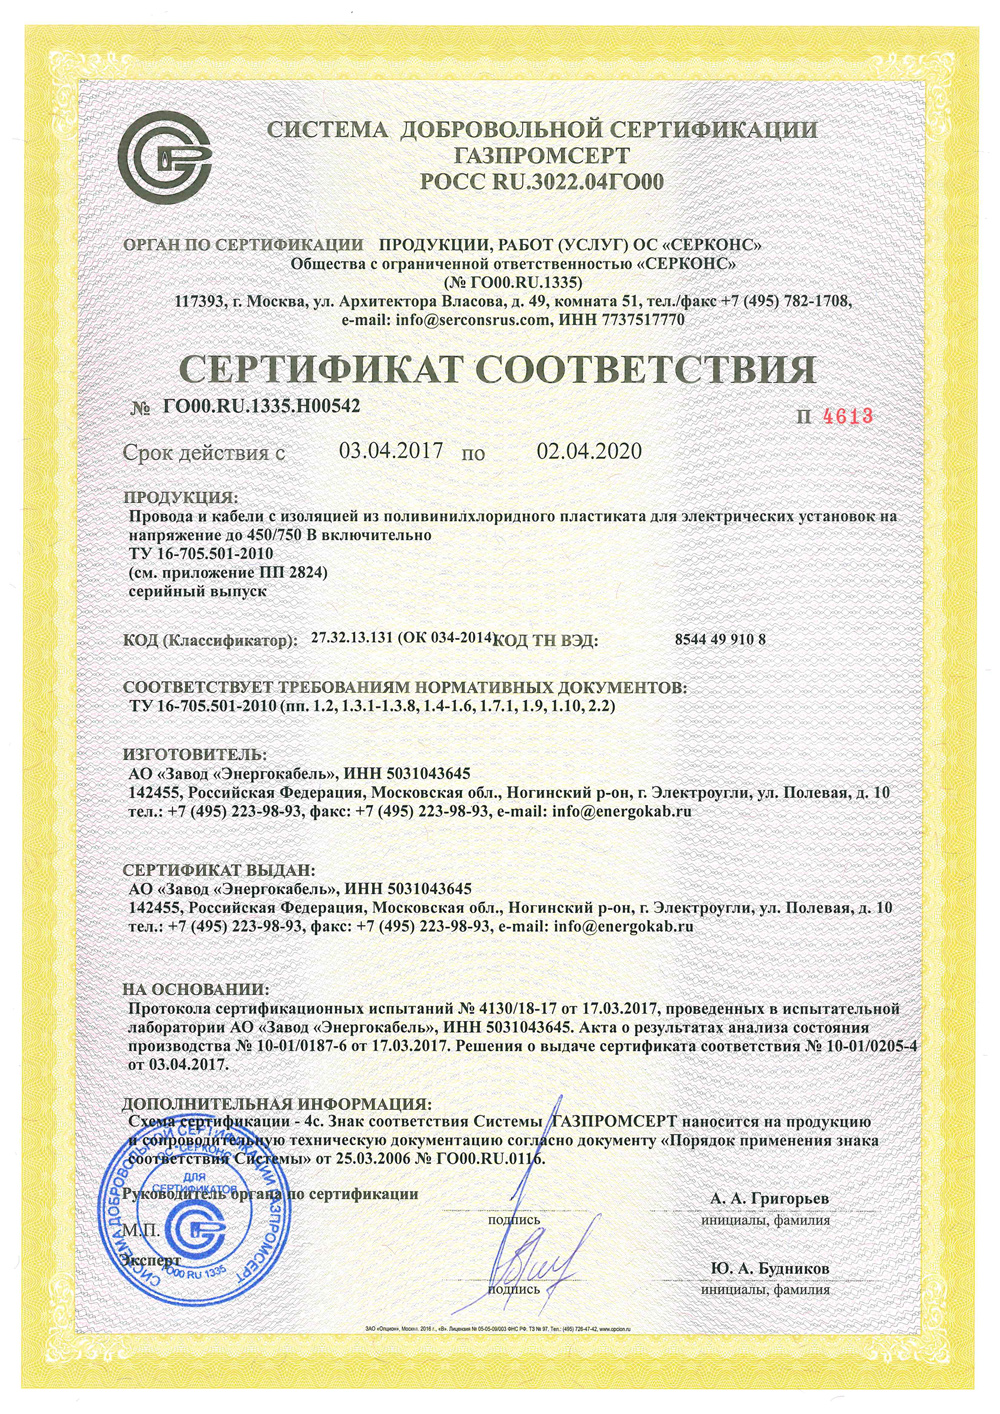 Certificate of Conformity No. ГО00.RU.1335.Н00542. Wires and cables with PVC insulation for electrical installations up to 450/750 V, inclusive.